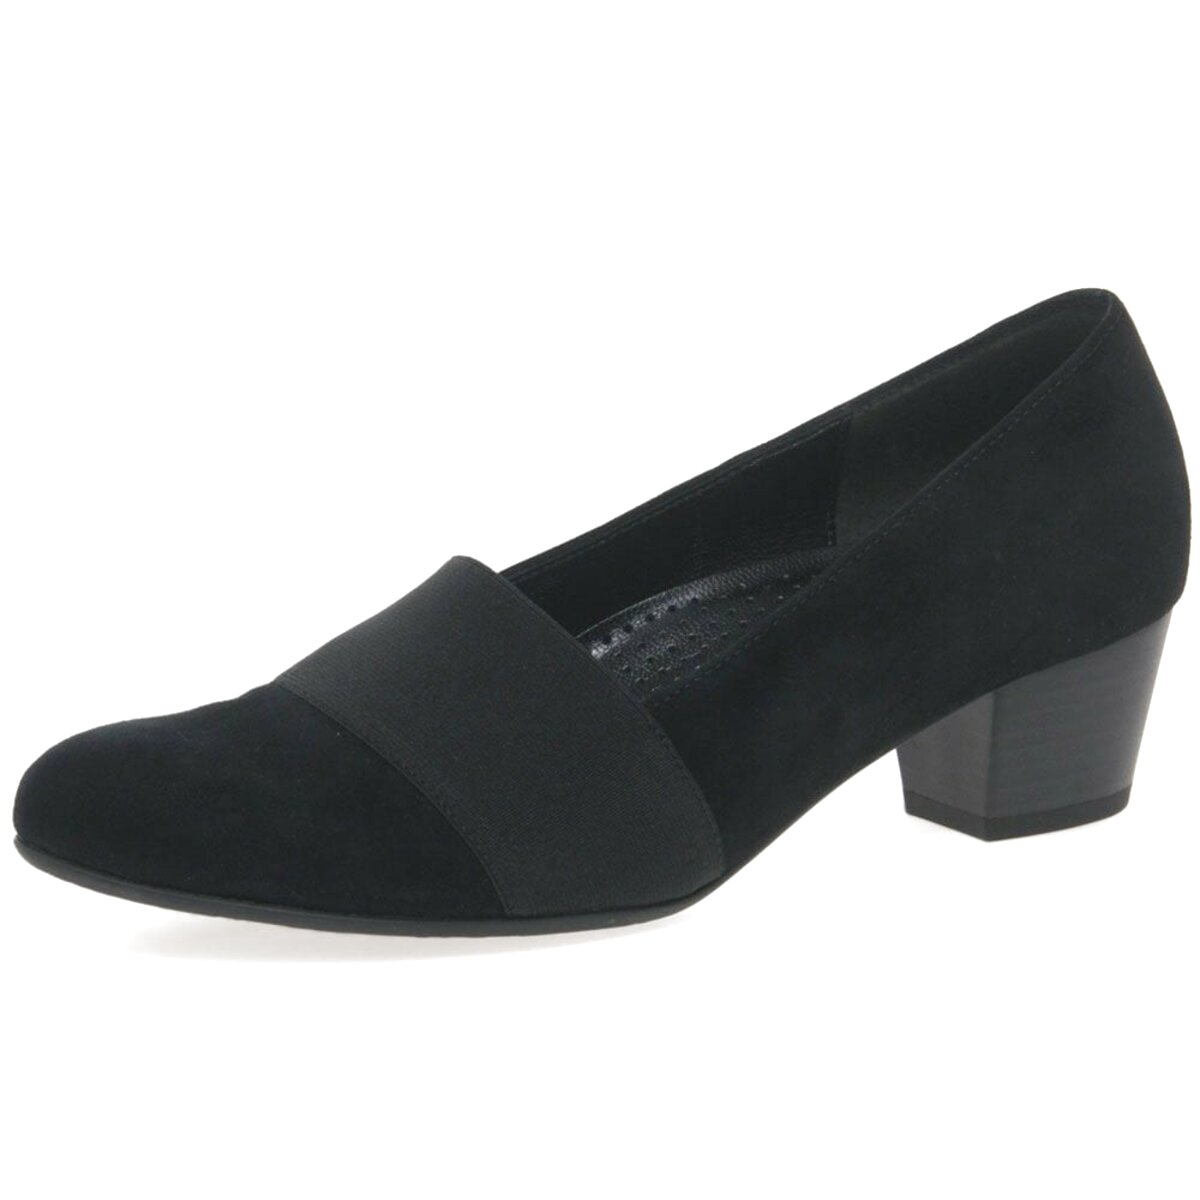 gabor wide fitting ladies shoes for sale